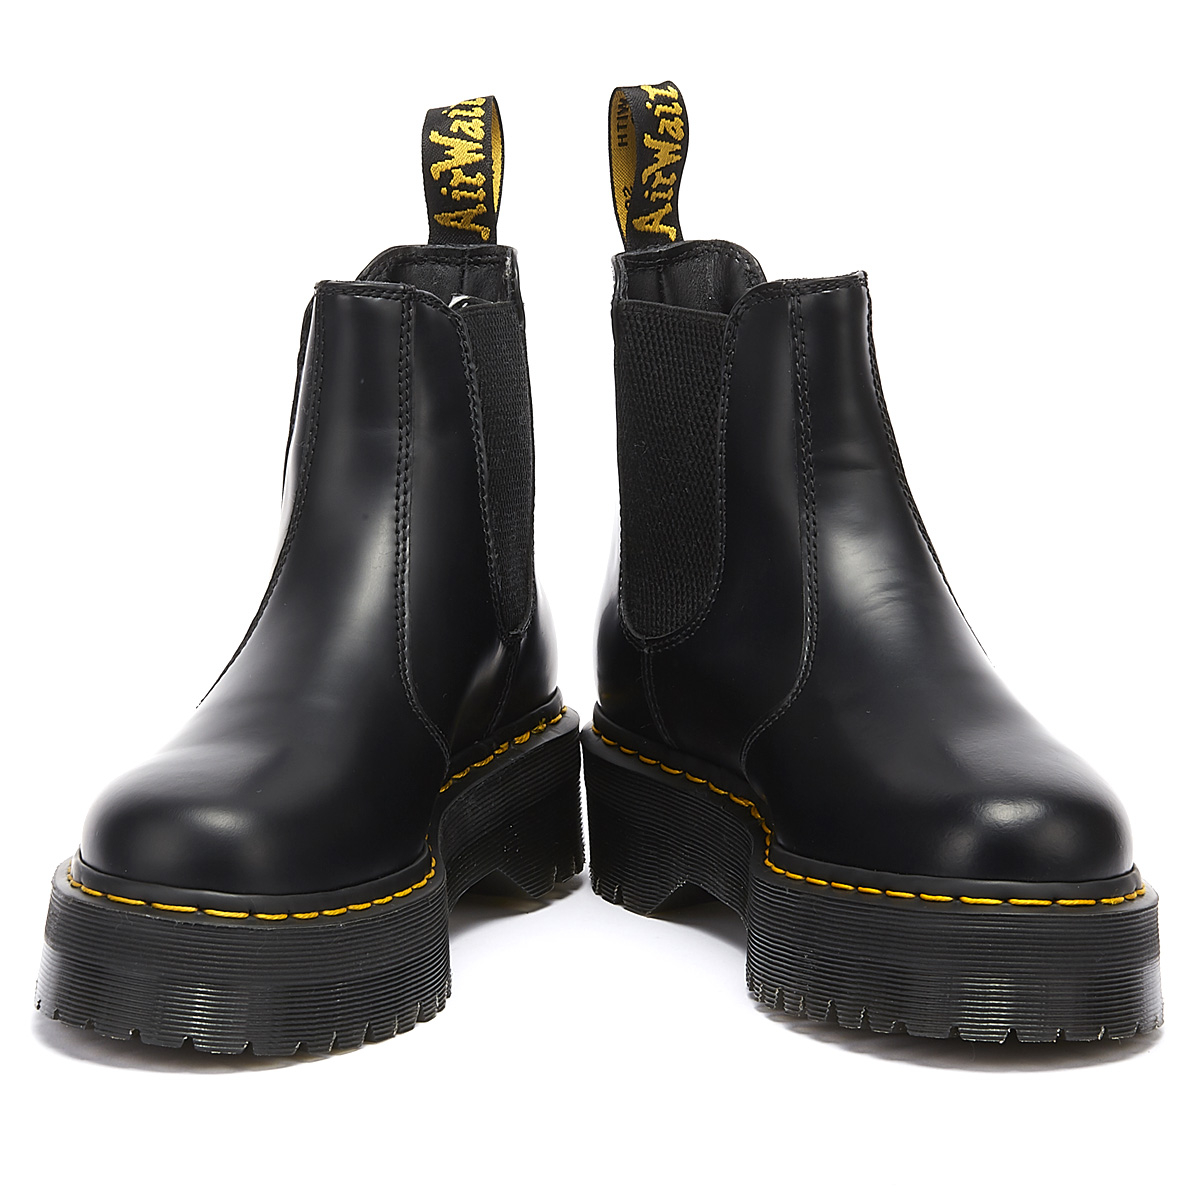 Martens 2976 Quad Womens Smooth Black Boots Warm Winter Leather Shoes Dr